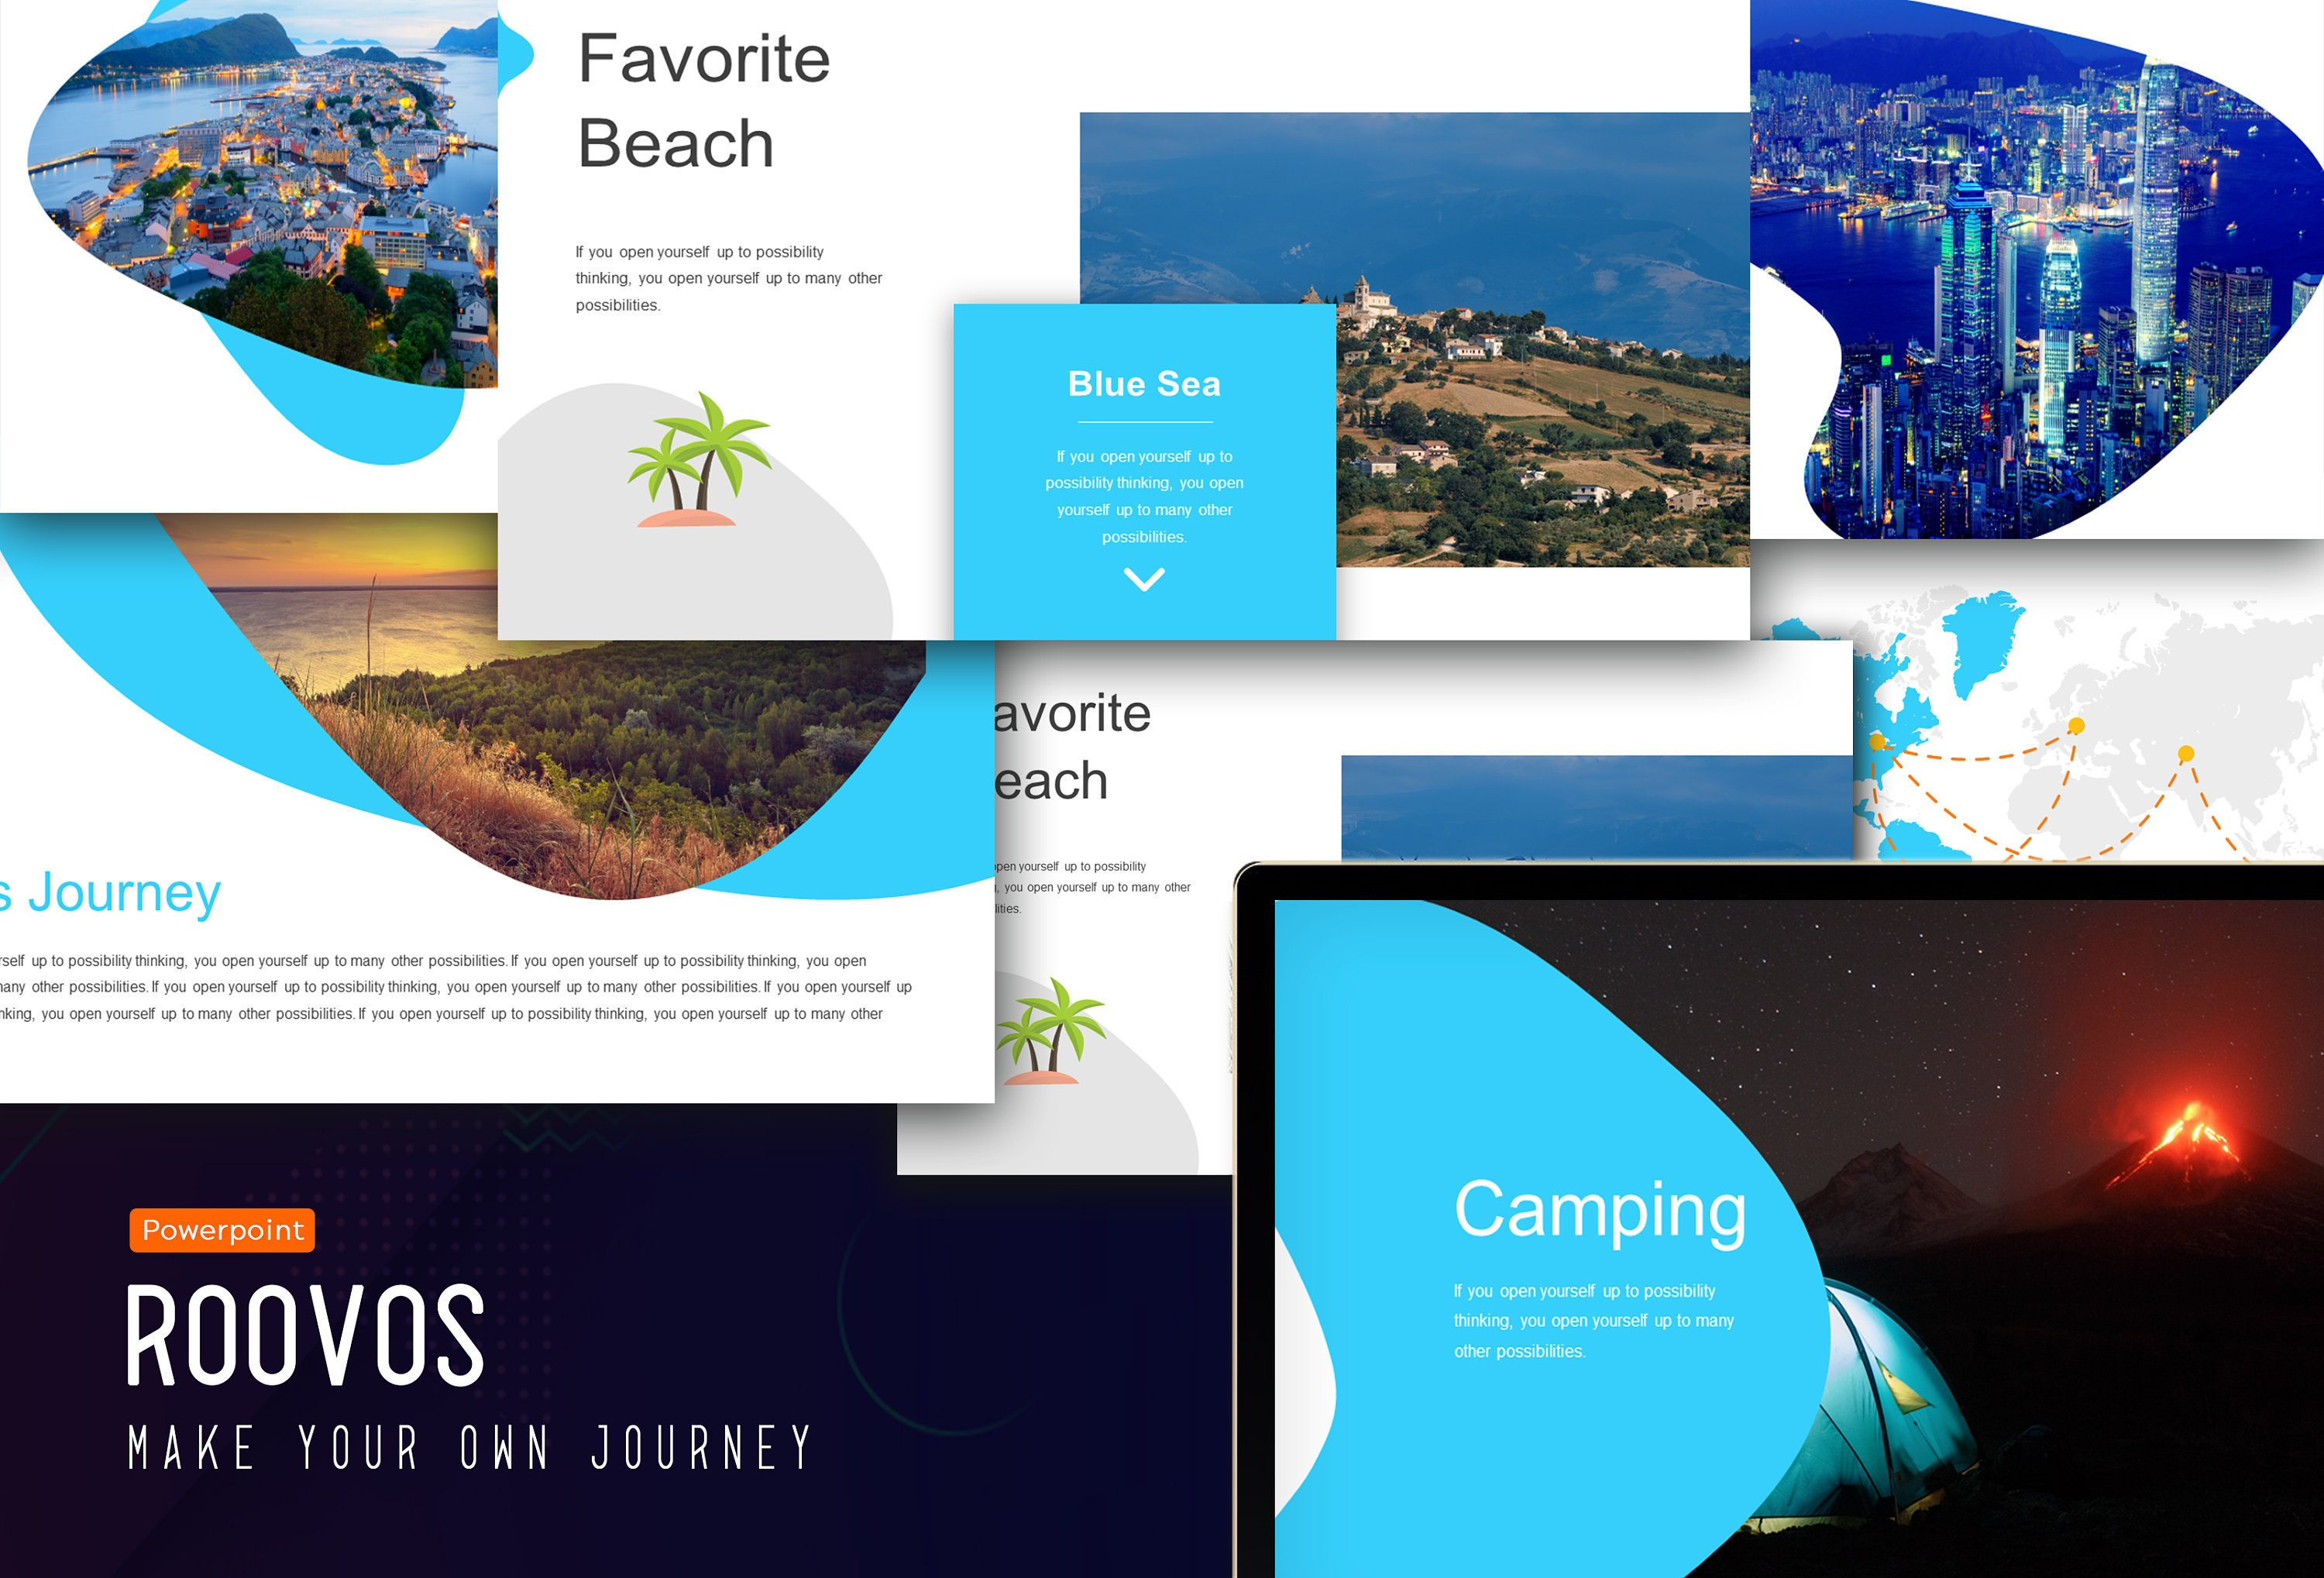 Roovos Travel And Tourism Powerpoint Template Traveling Power  Etsy For Tourism Powerpoint Template